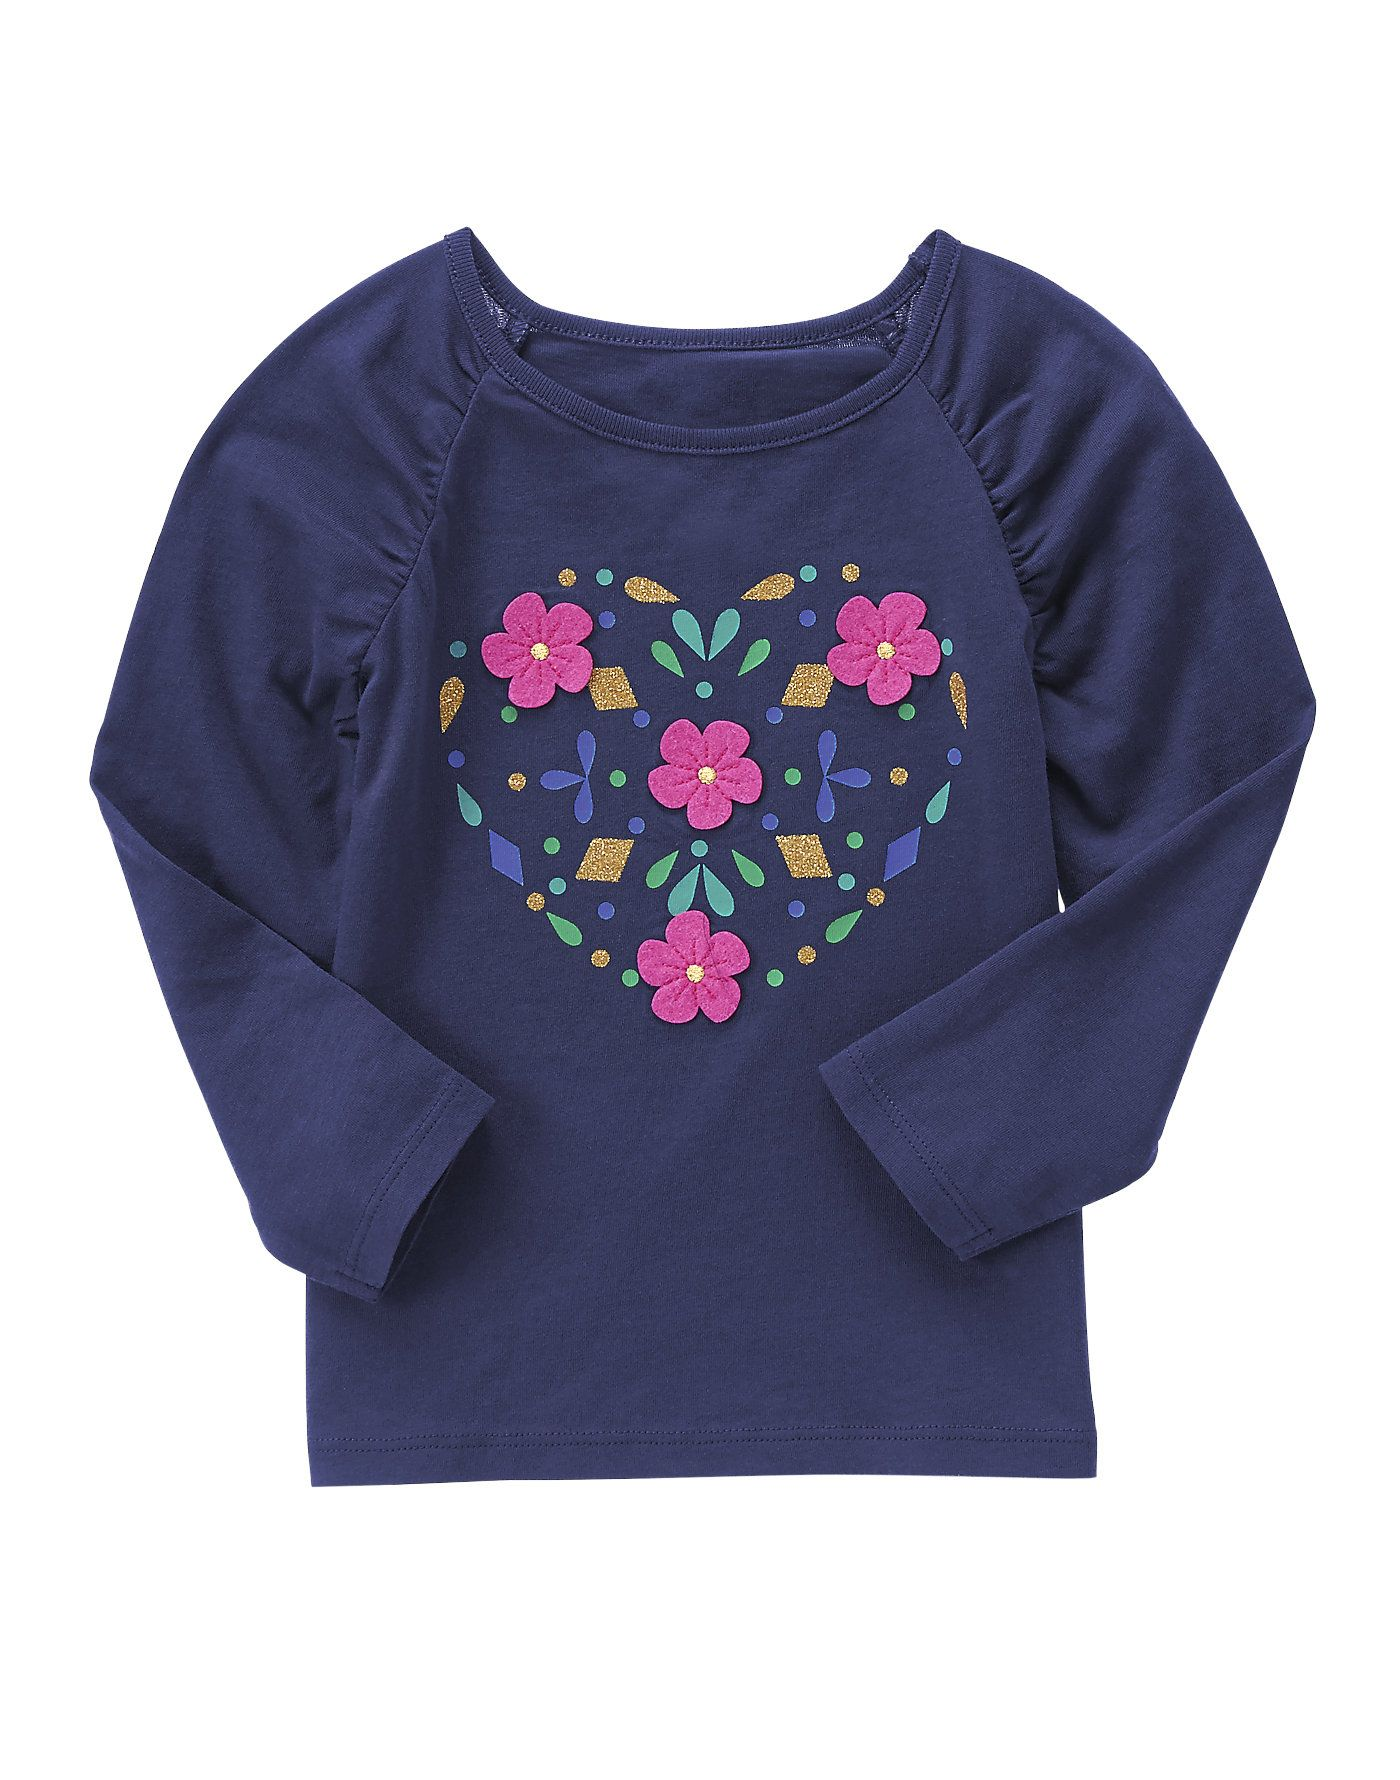 Floral Heart Tee